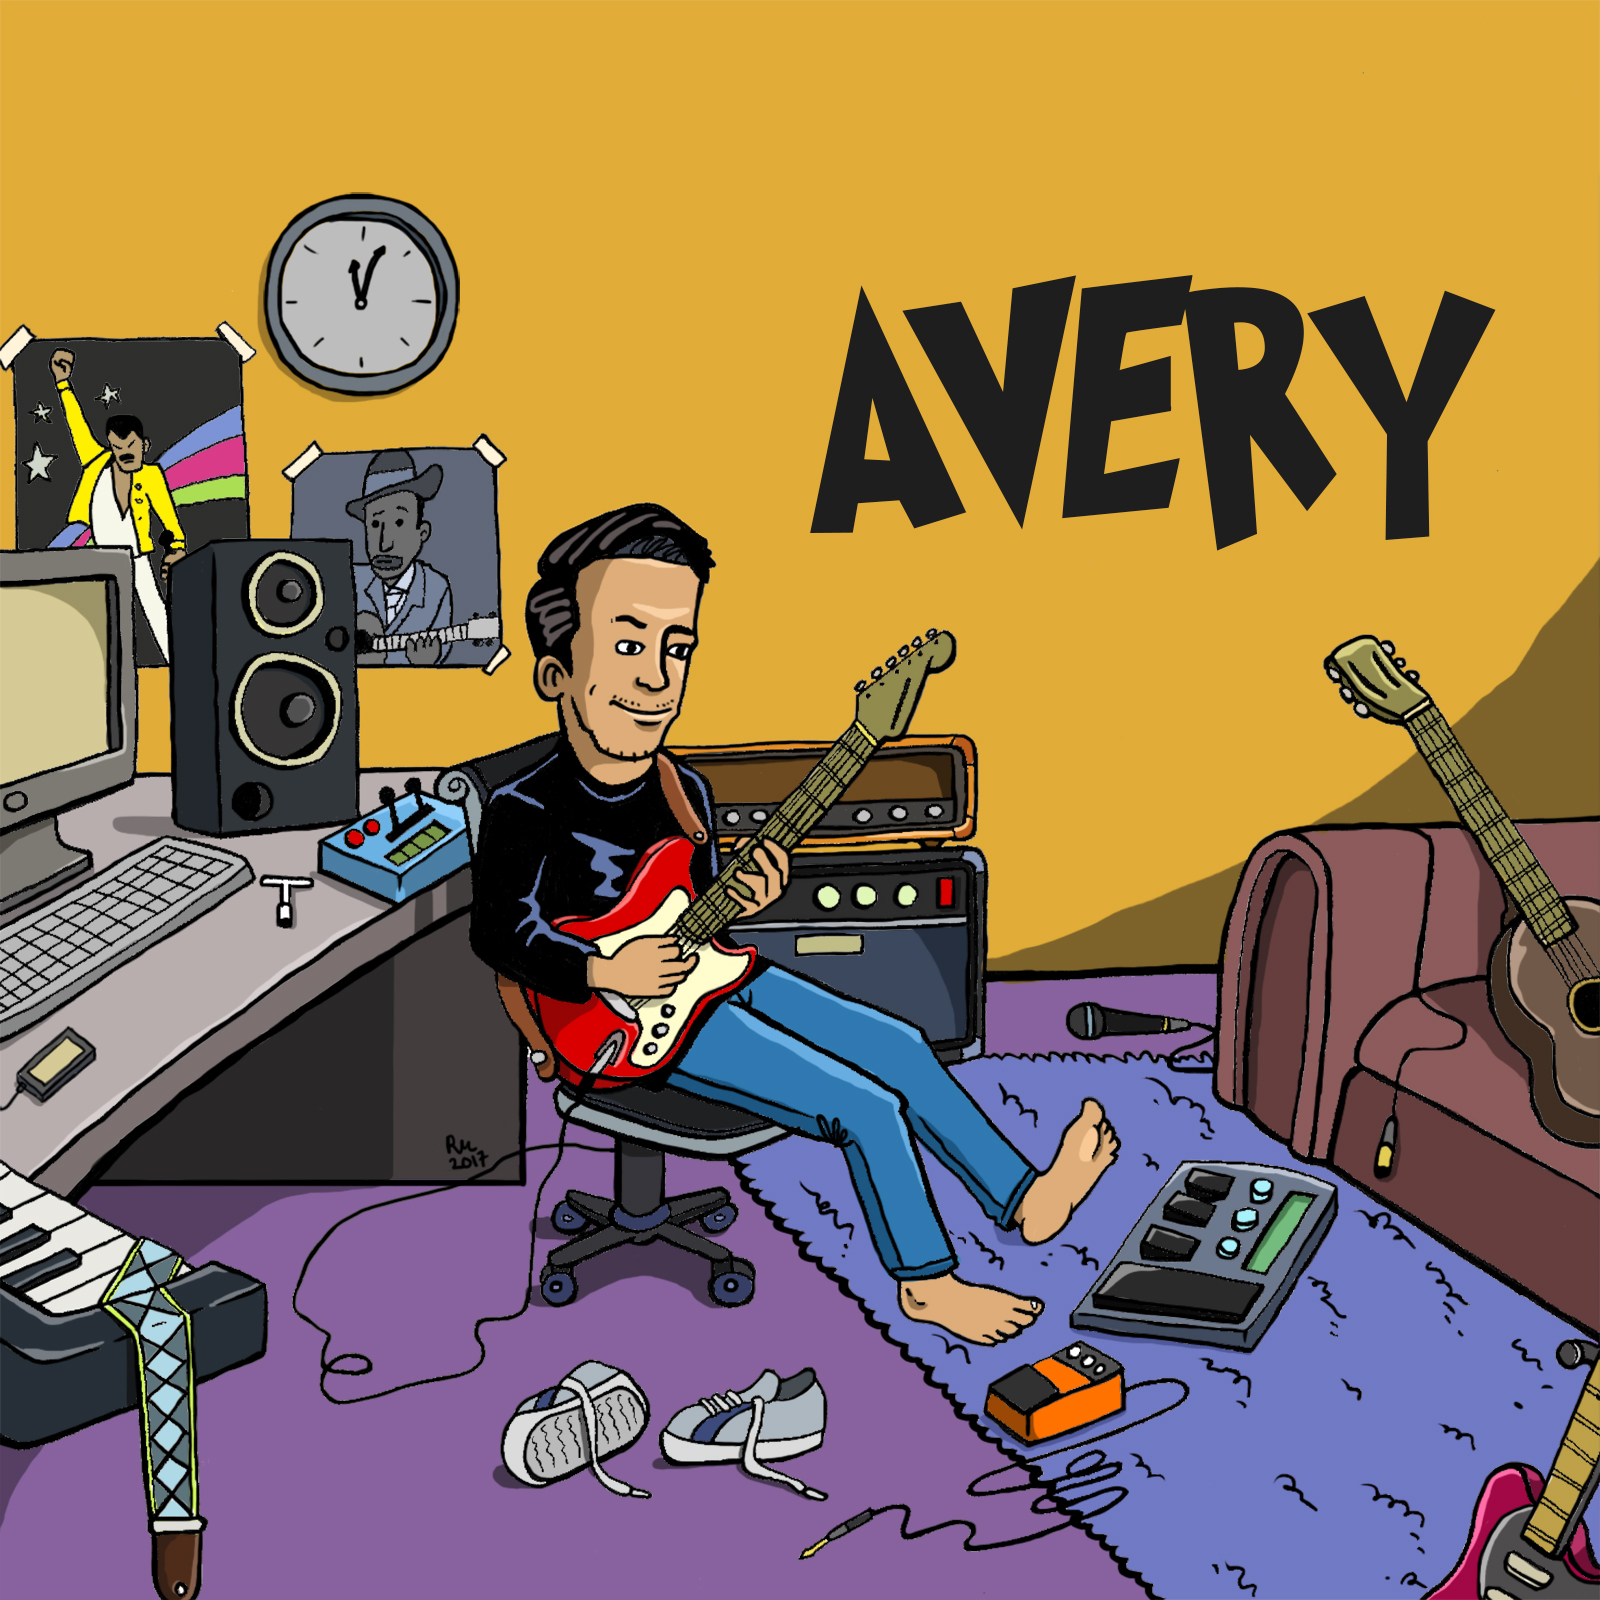 AVERY - AdeaveryMusic Works Release Concert // MWRCTuesday, 11 July 20177pm - 9pmby iCSL℗2017 iLuwi Production